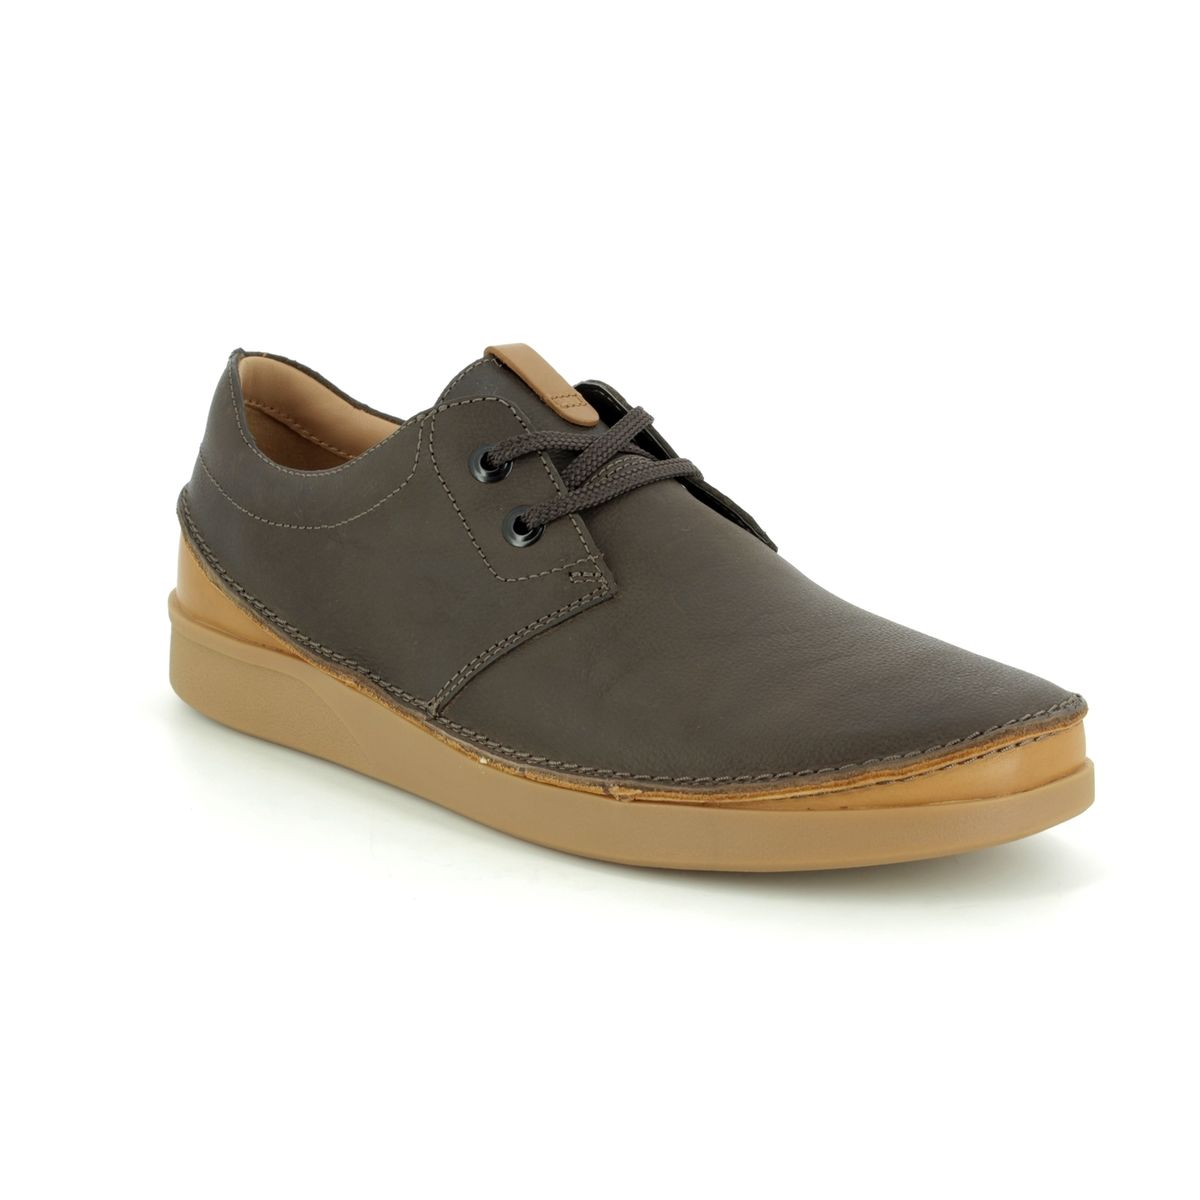 CLARKS OAKLAND LACE